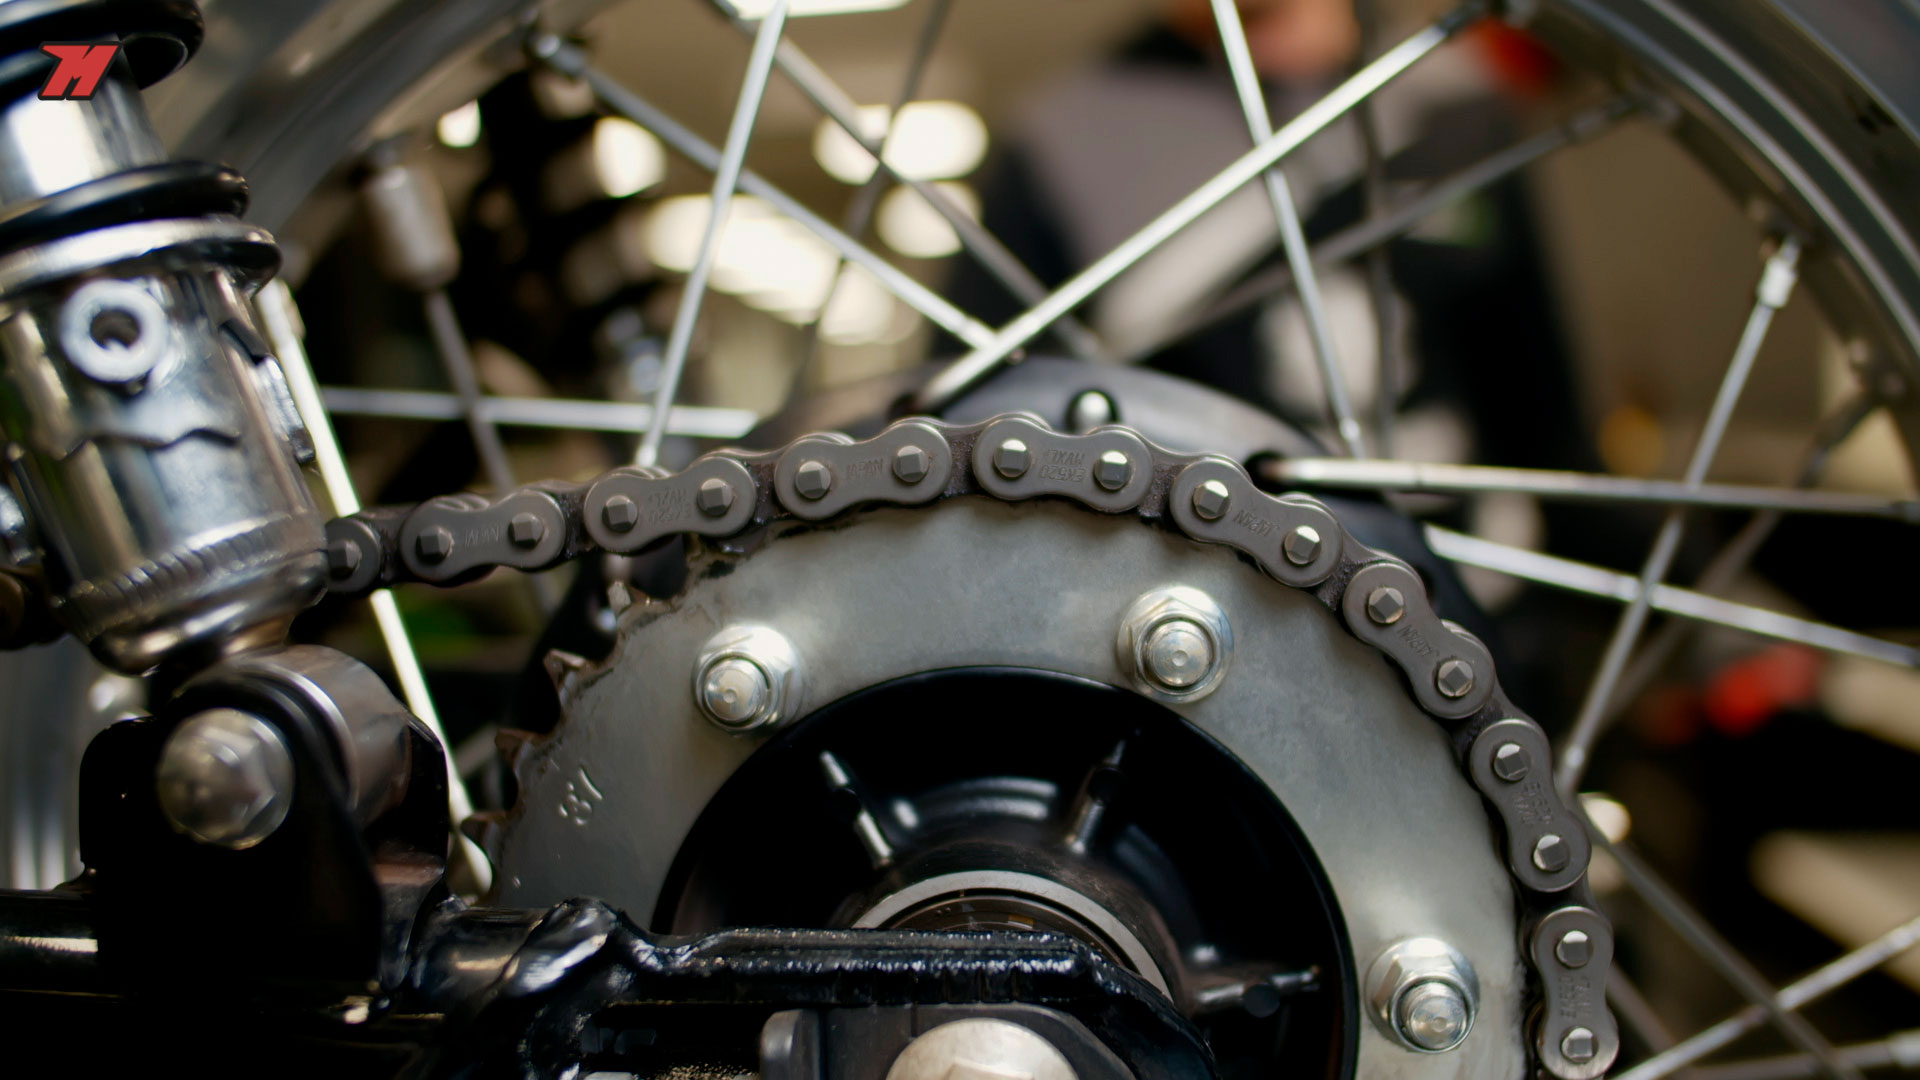 Tips and tricks to get the motorcycle chain in good